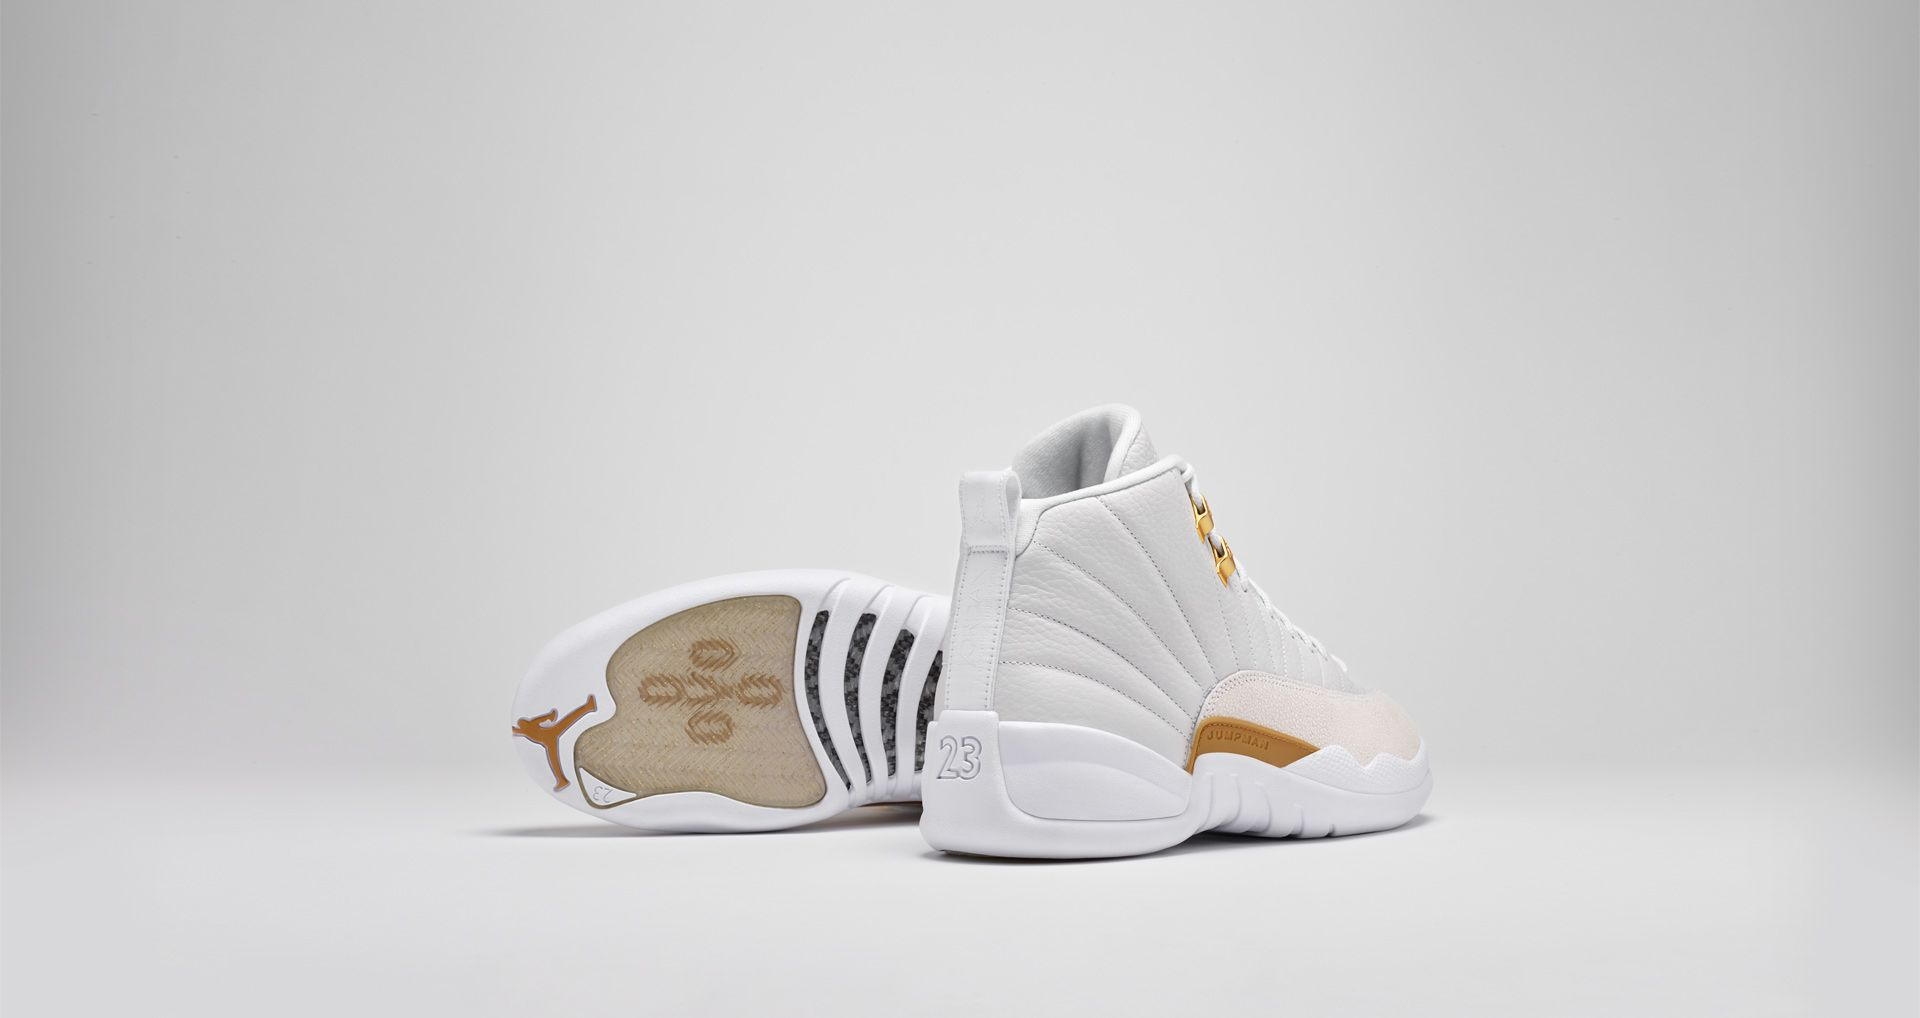 timeless design 1da99 e89b1 Upcoming · Shop all Nike Soccer. Air Jordan 12 OVO  White   Metallic Gold   ...